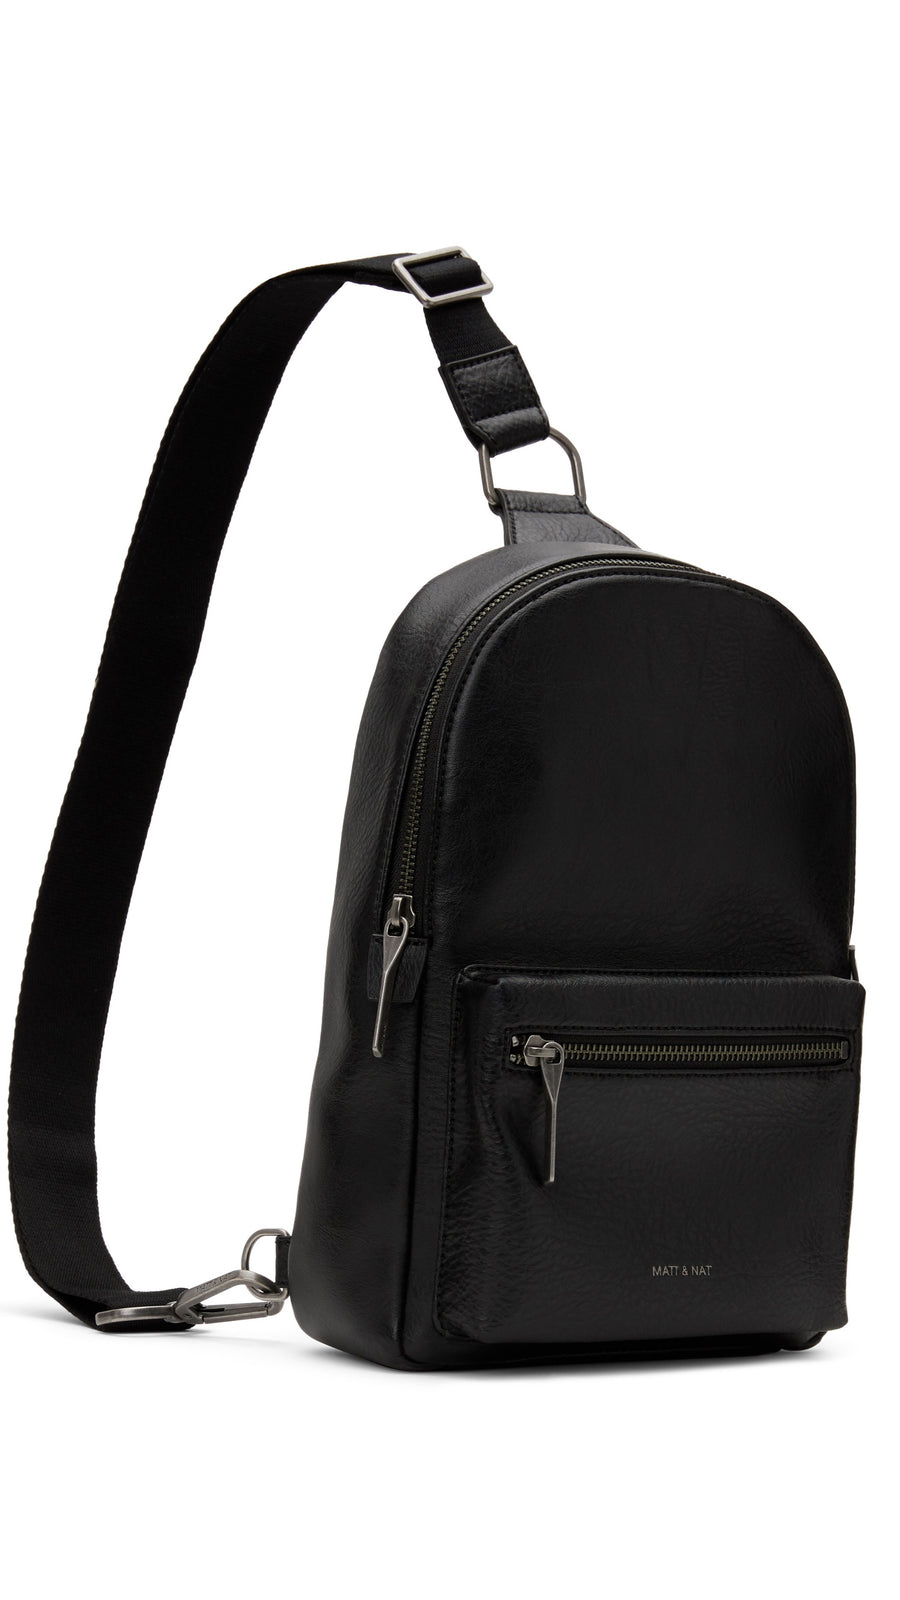 Matt & Nat Voassm Small Sling Backpack